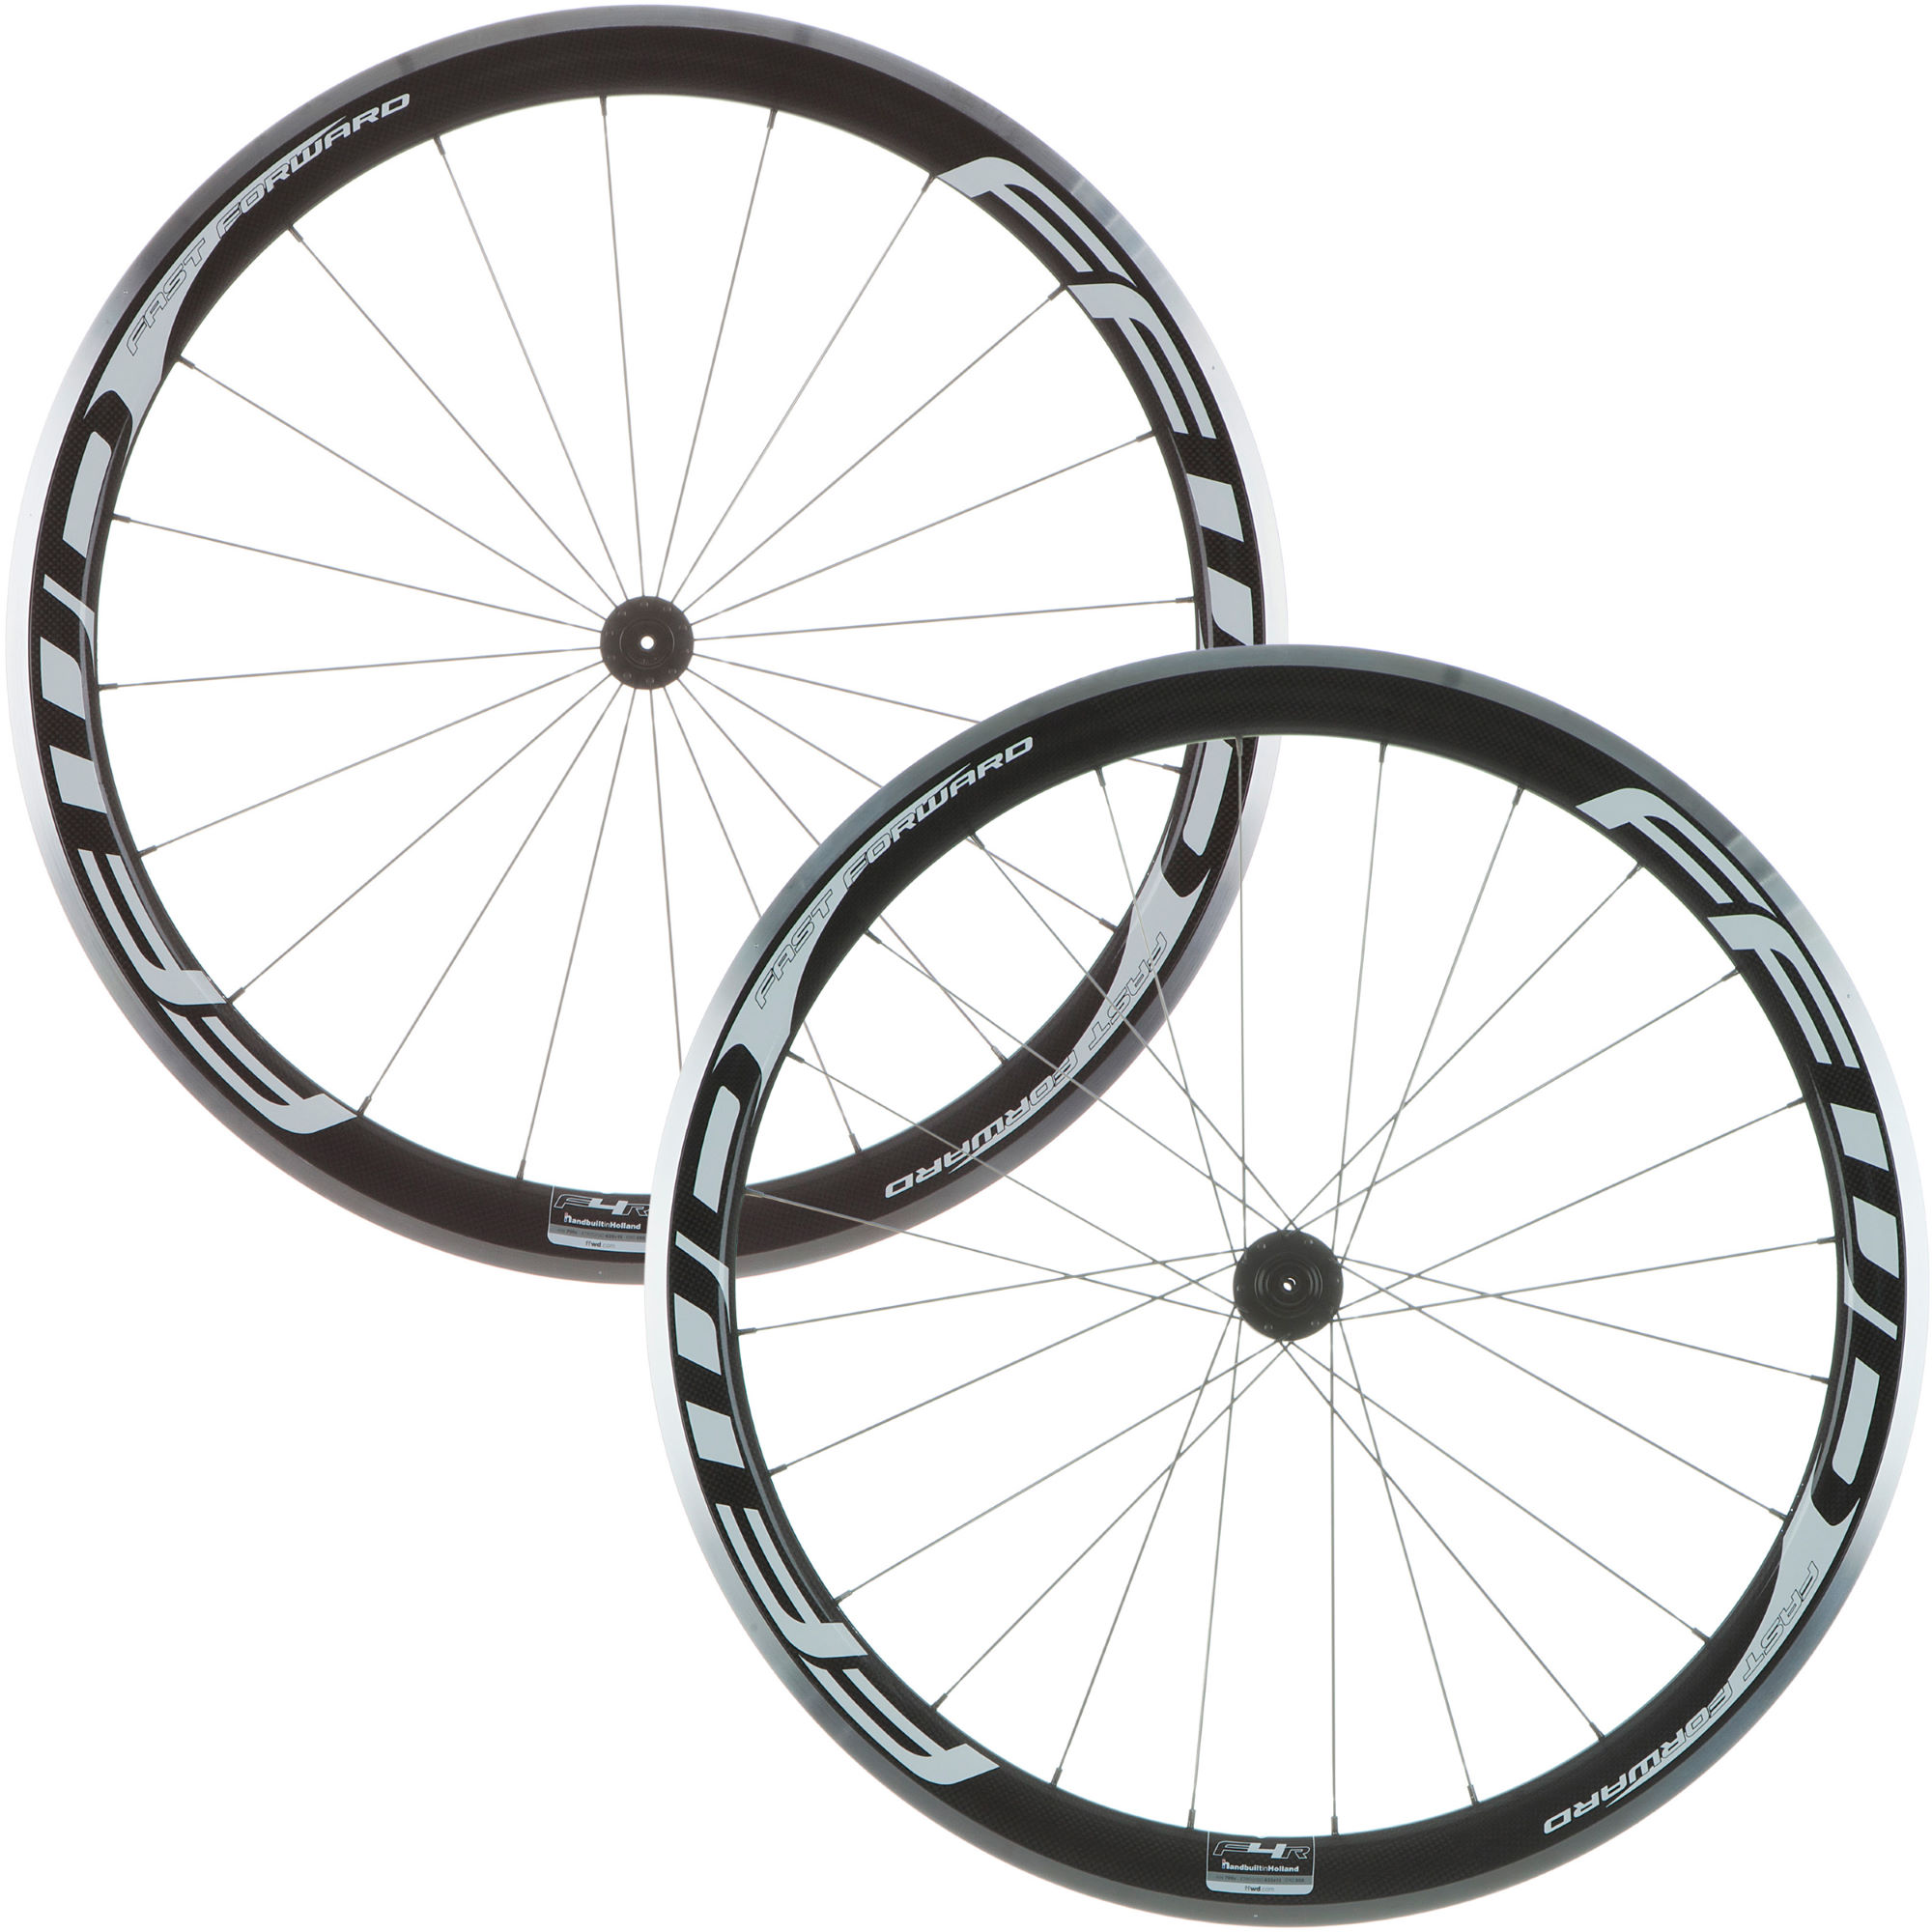 fast-forward-f4r-wheels-blk-wht